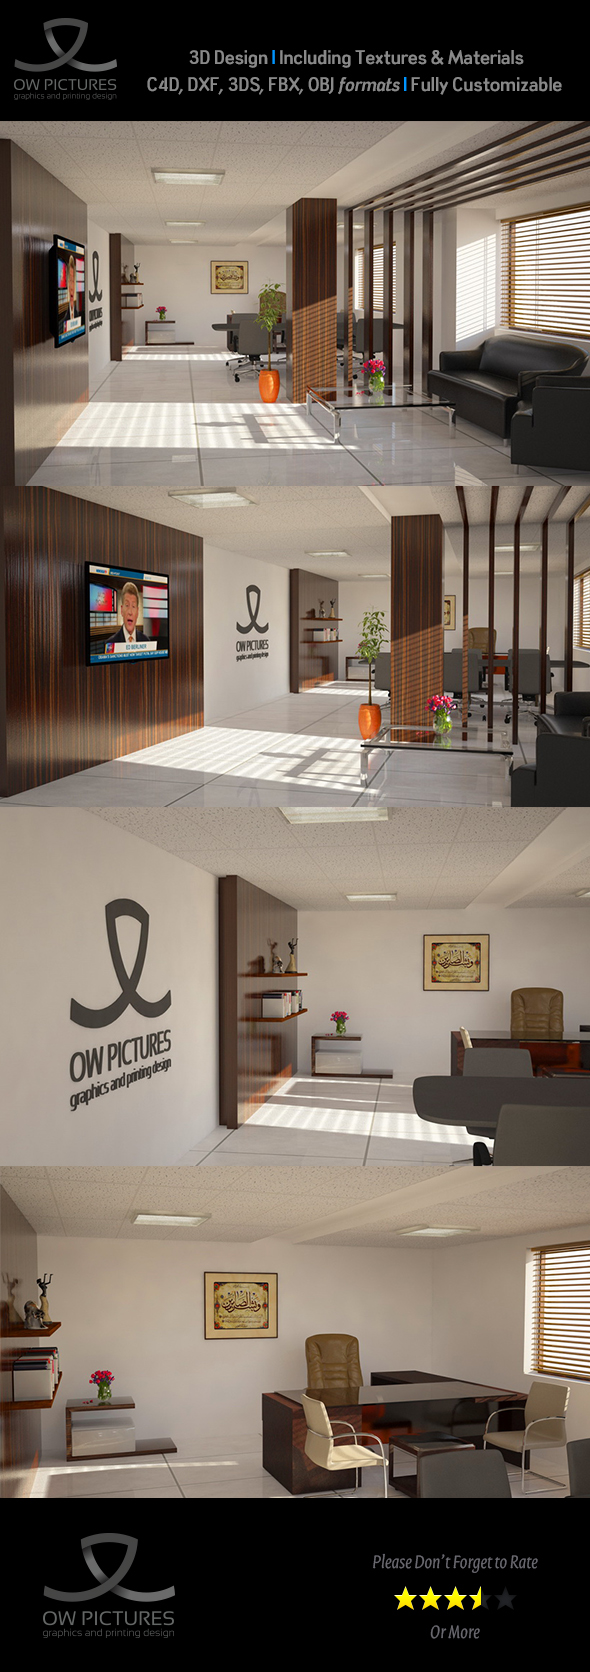 Office2 - 3D Model Design - 3DOcean Item for Sale